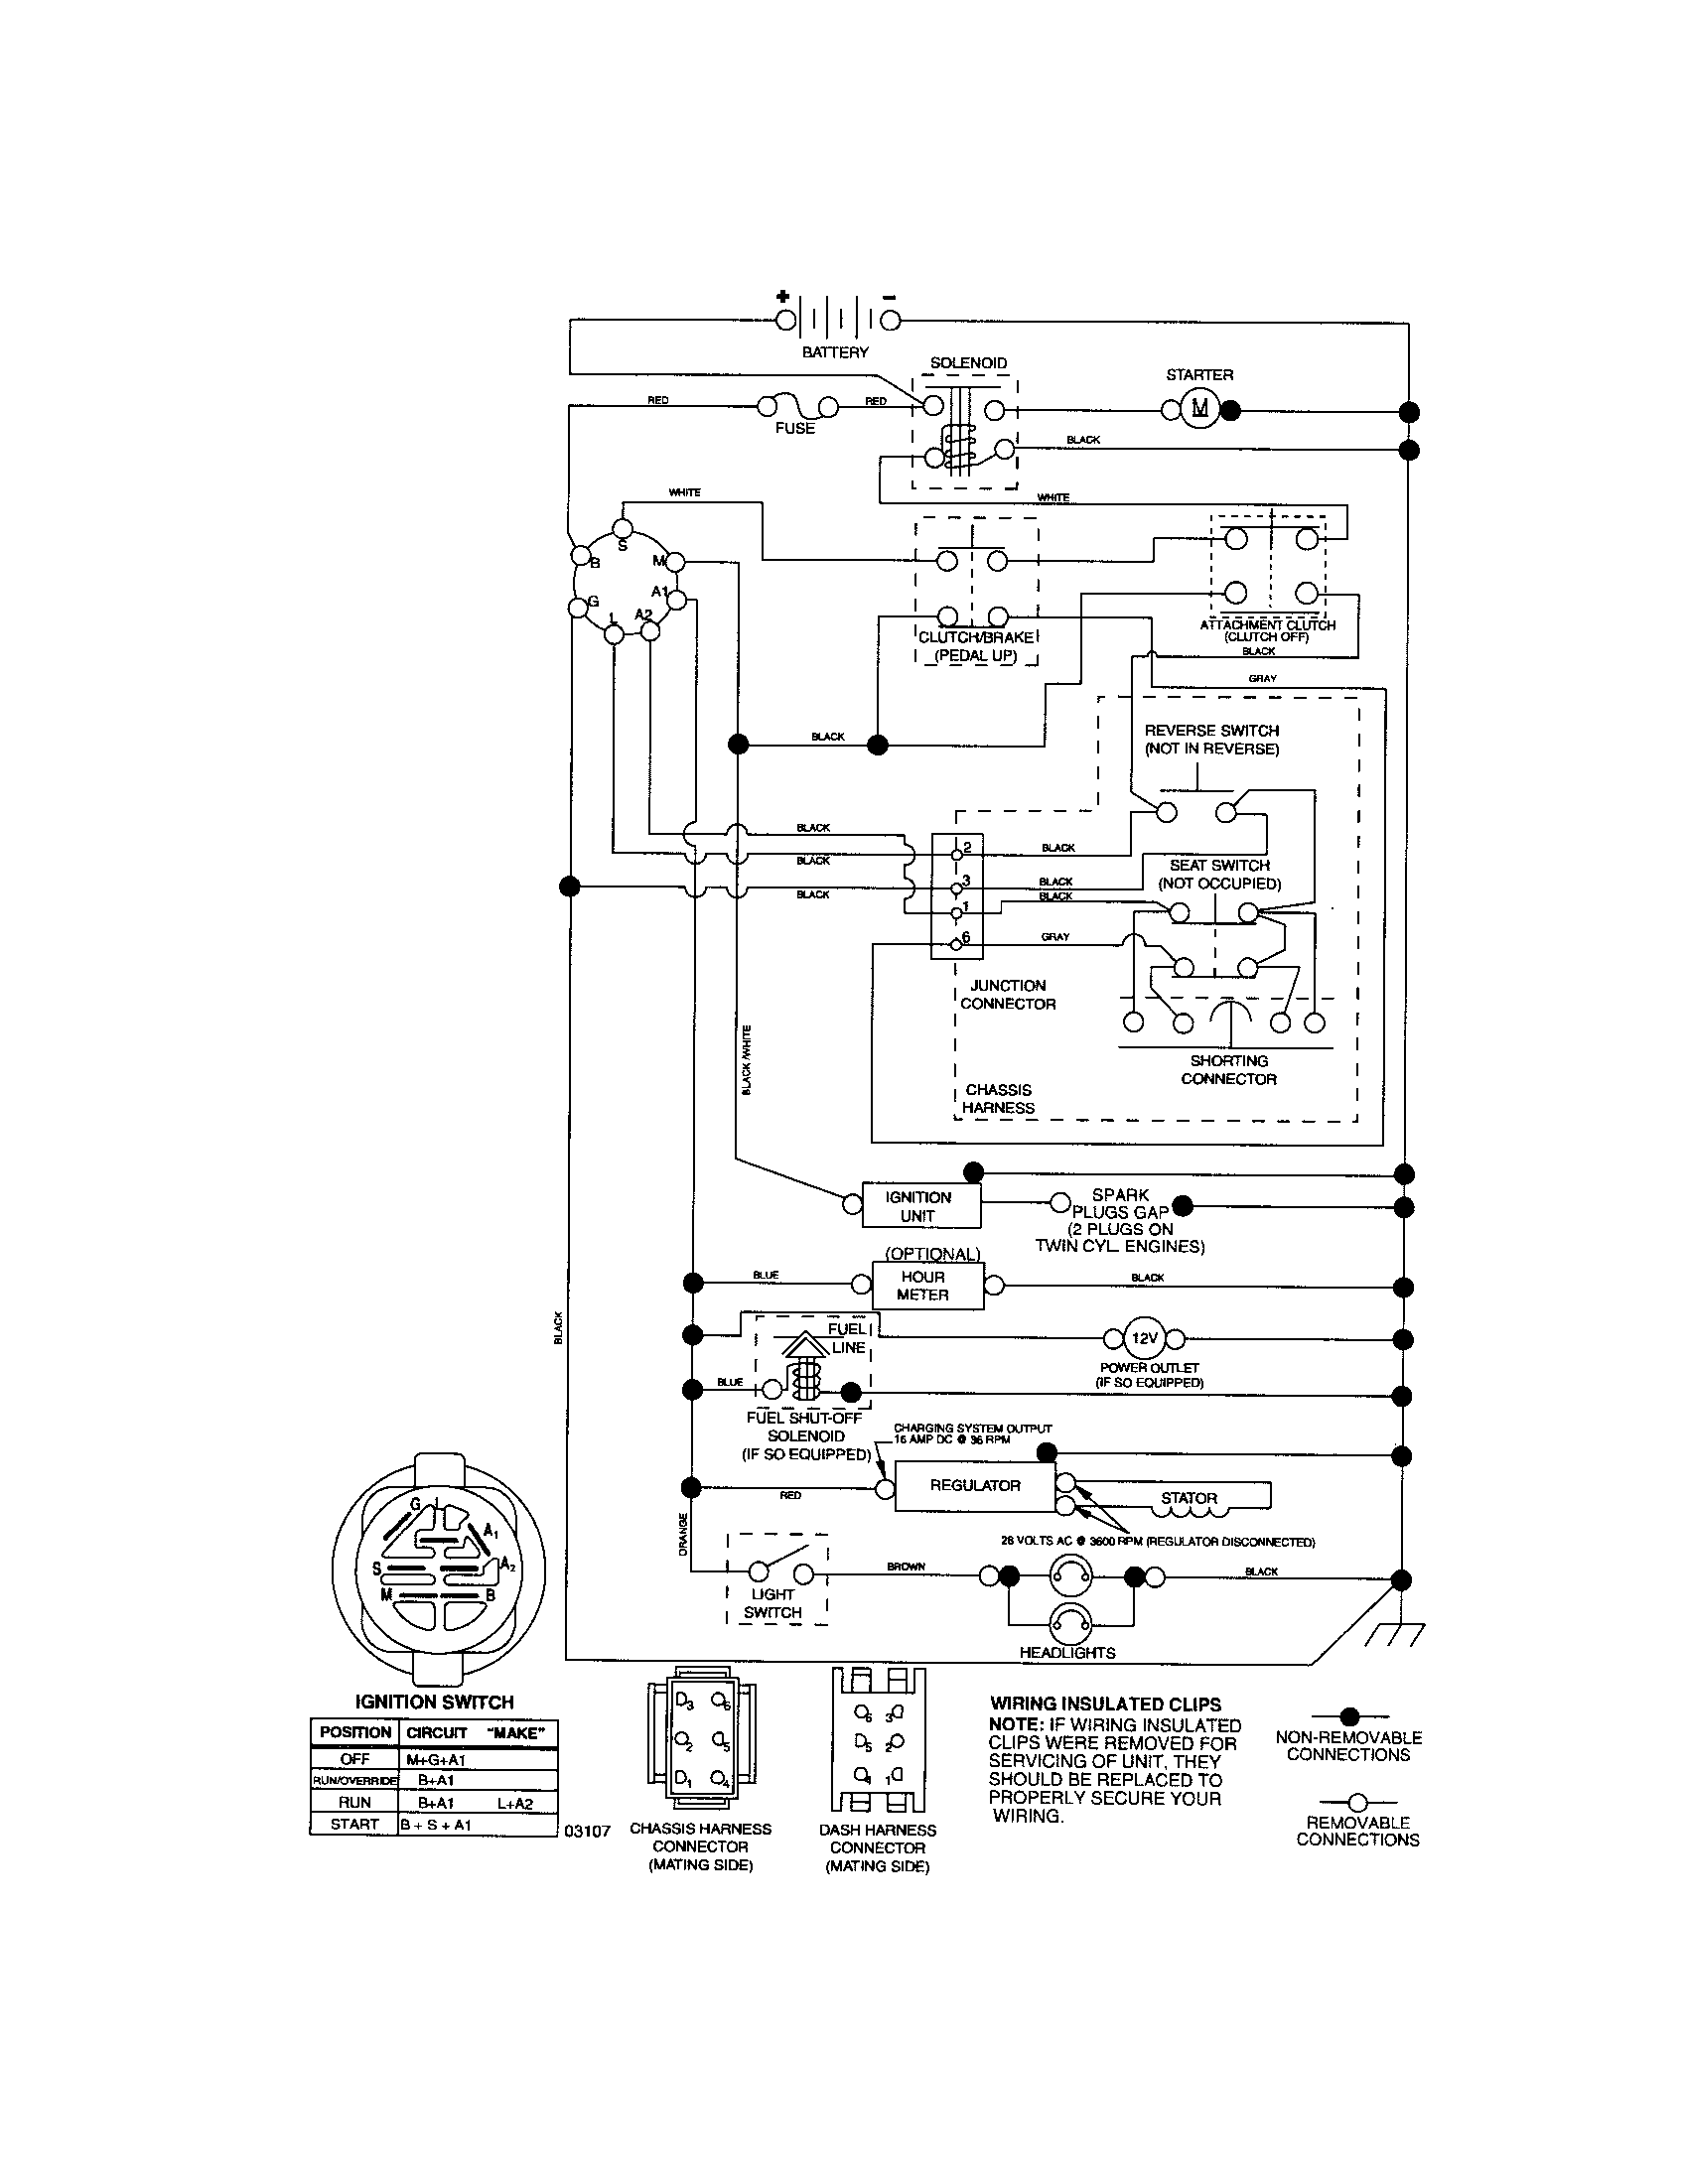 6af5f1447fd13c8443376822ddc1e105 craftsman riding mower electrical diagram wiring diagram craftsman riding lawn mower lt1000 wiring diagram at gsmx.co